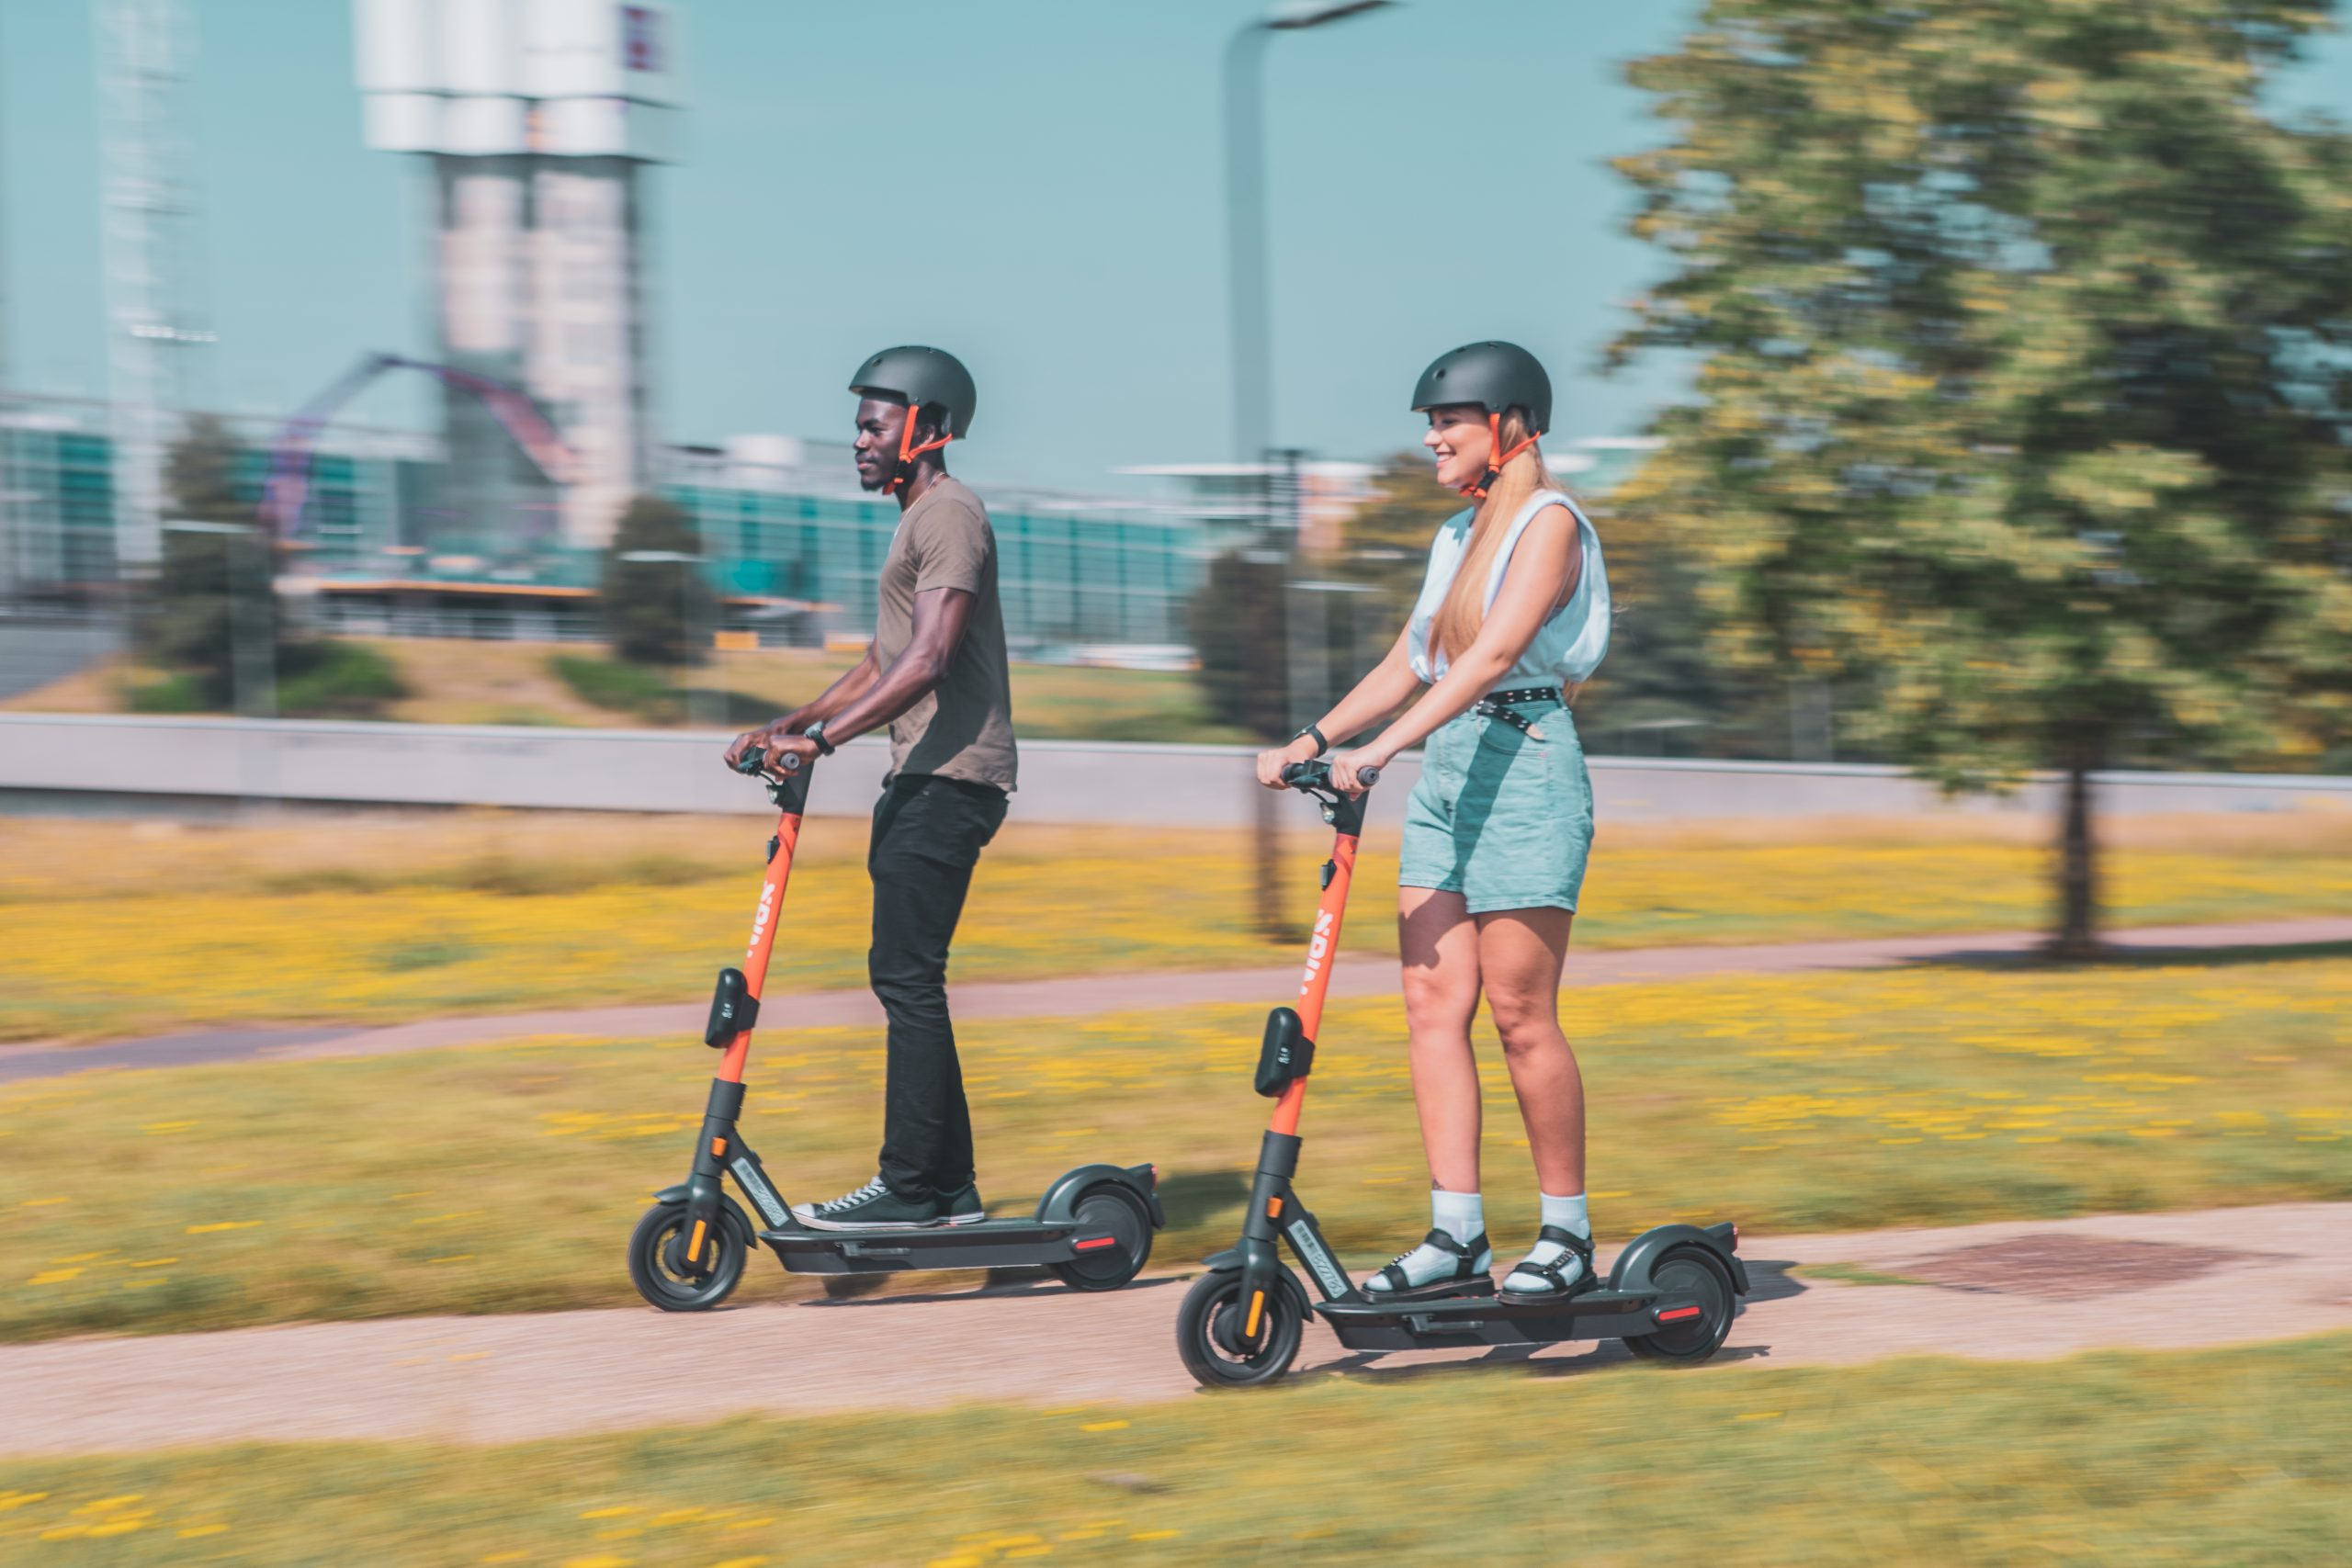 Mobility experts highlight potential of corporate micromobility schemes